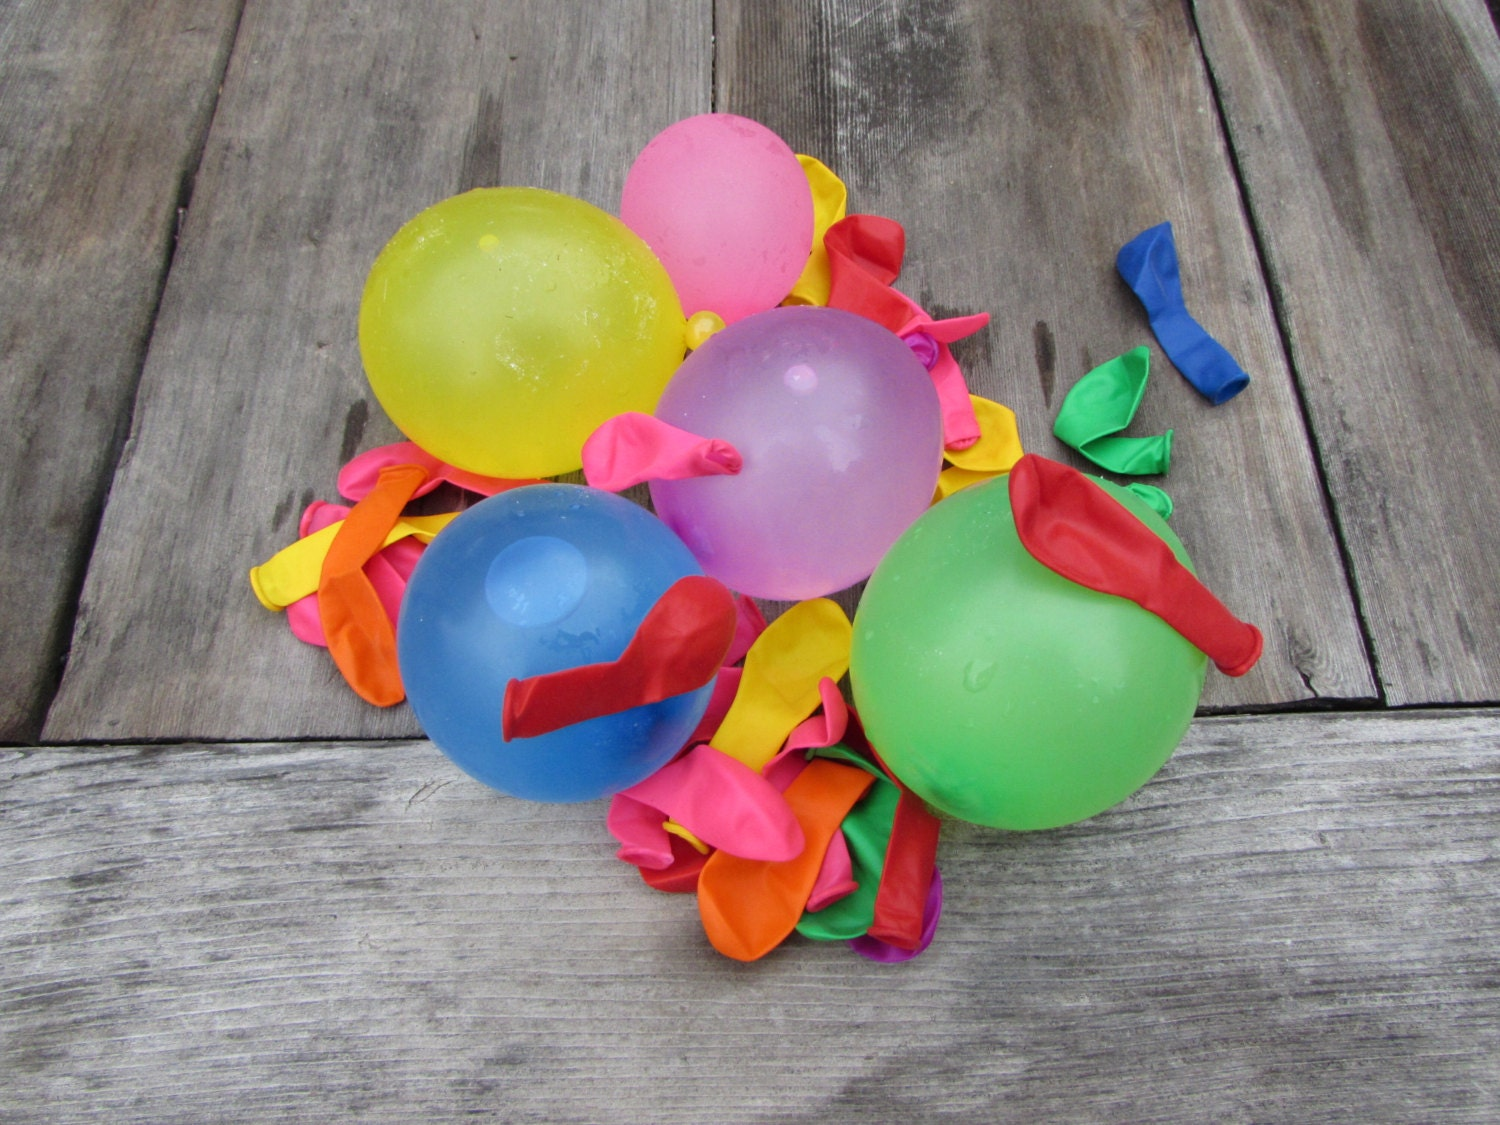 100 3 Inch Balloons For Decorating Hair Clips or Flip ...